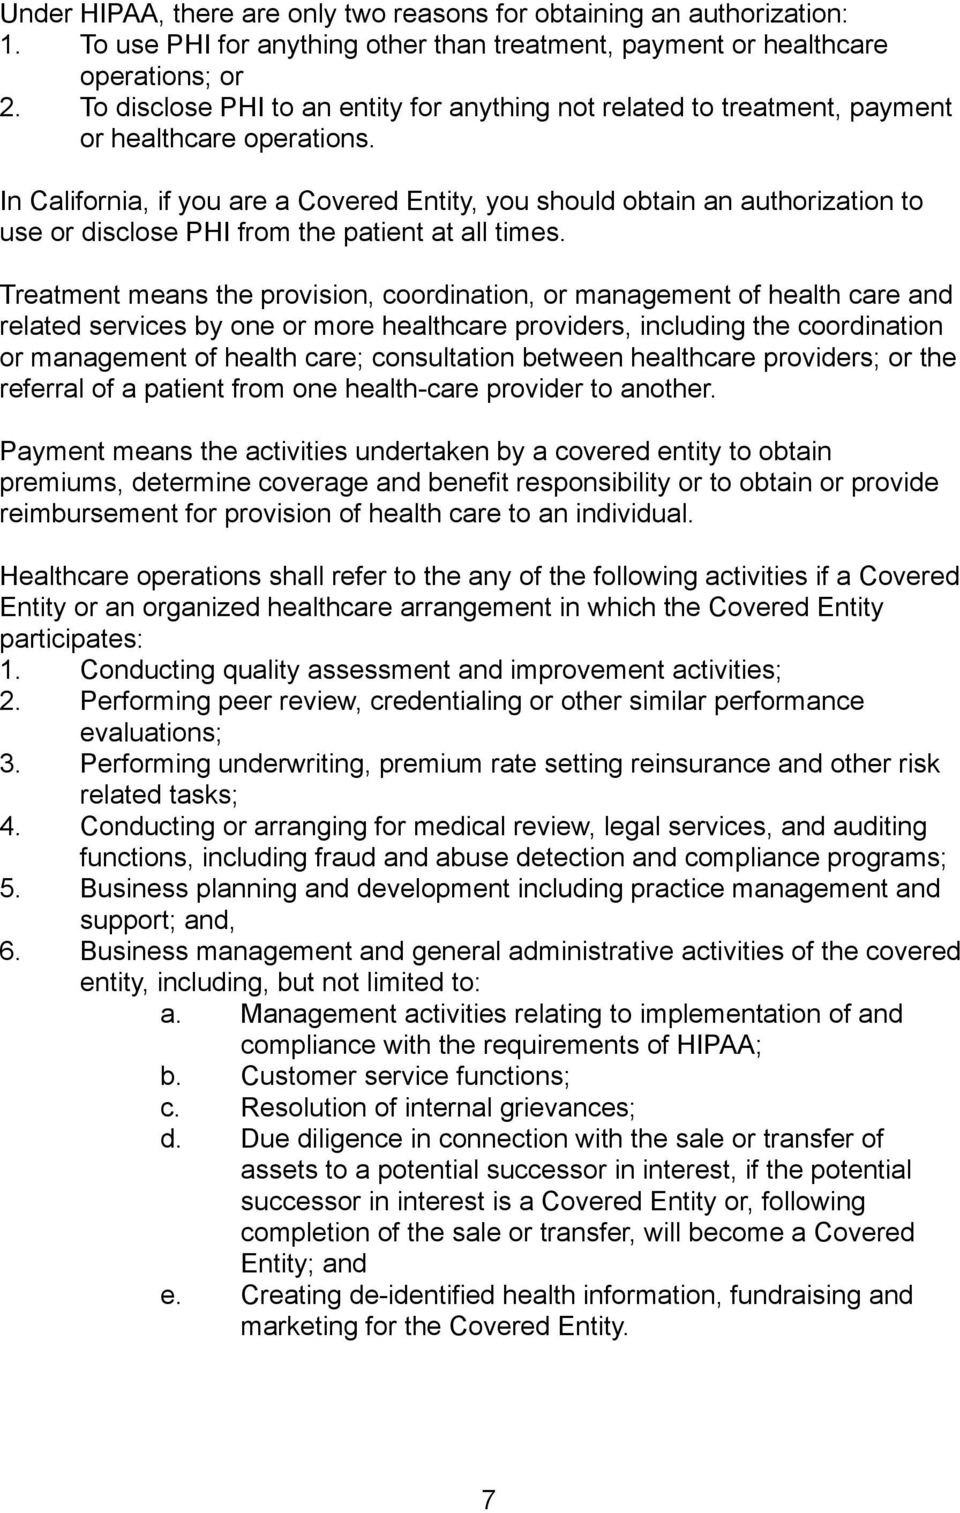 In California, if you are a Covered Entity, you should obtain an authorization to use or disclose PHI from the patient at all times.